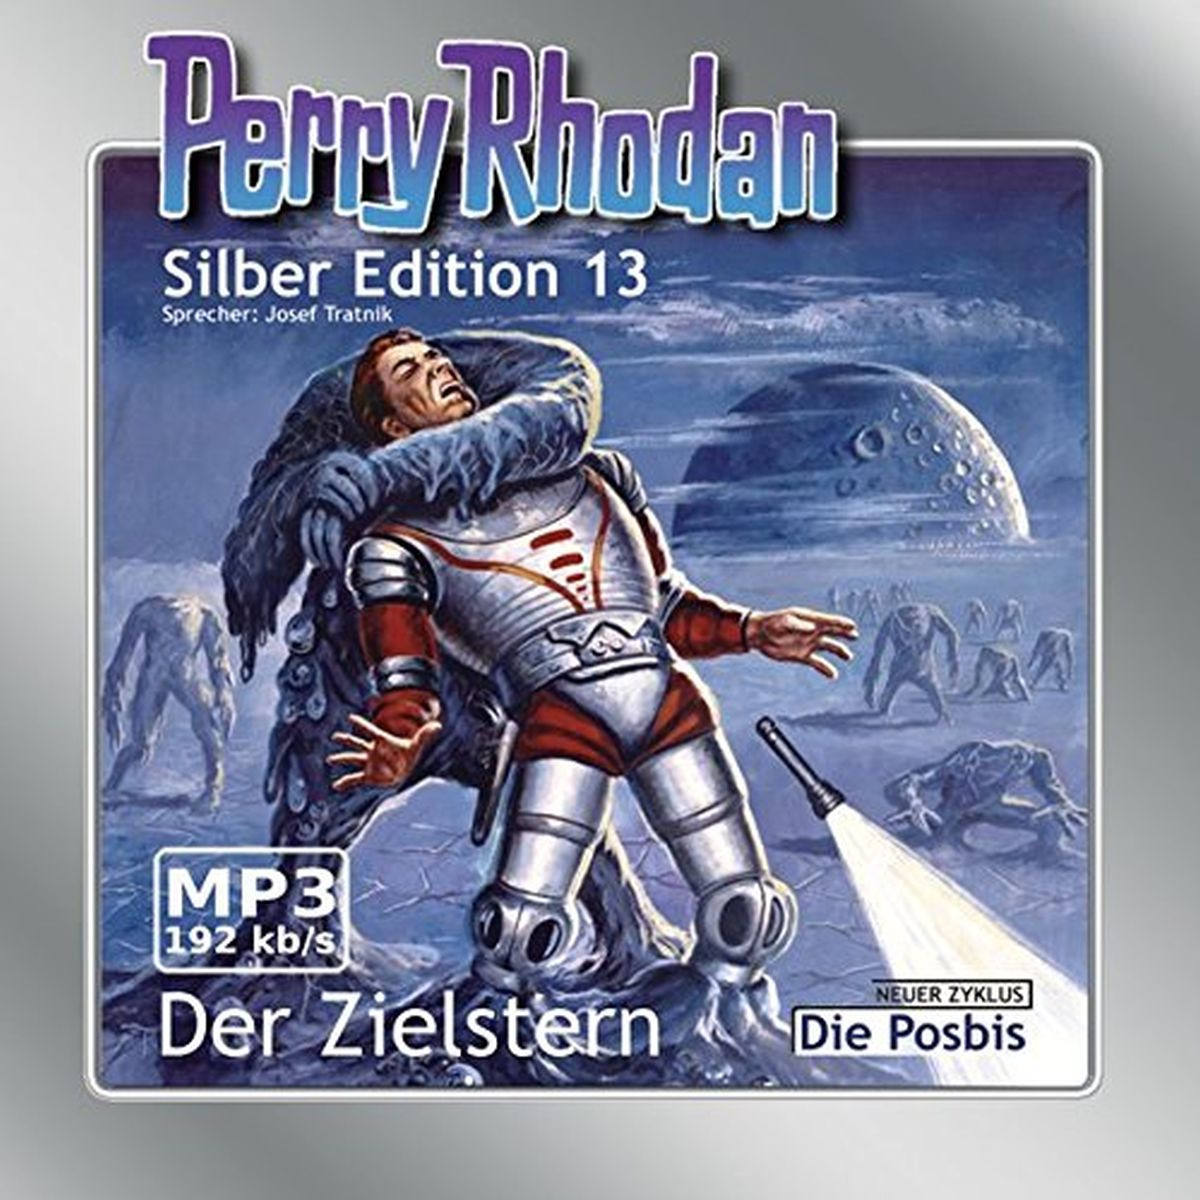 Perry Rhodan Silber Edition (mp3-CDs) 13 - Der Zielstern